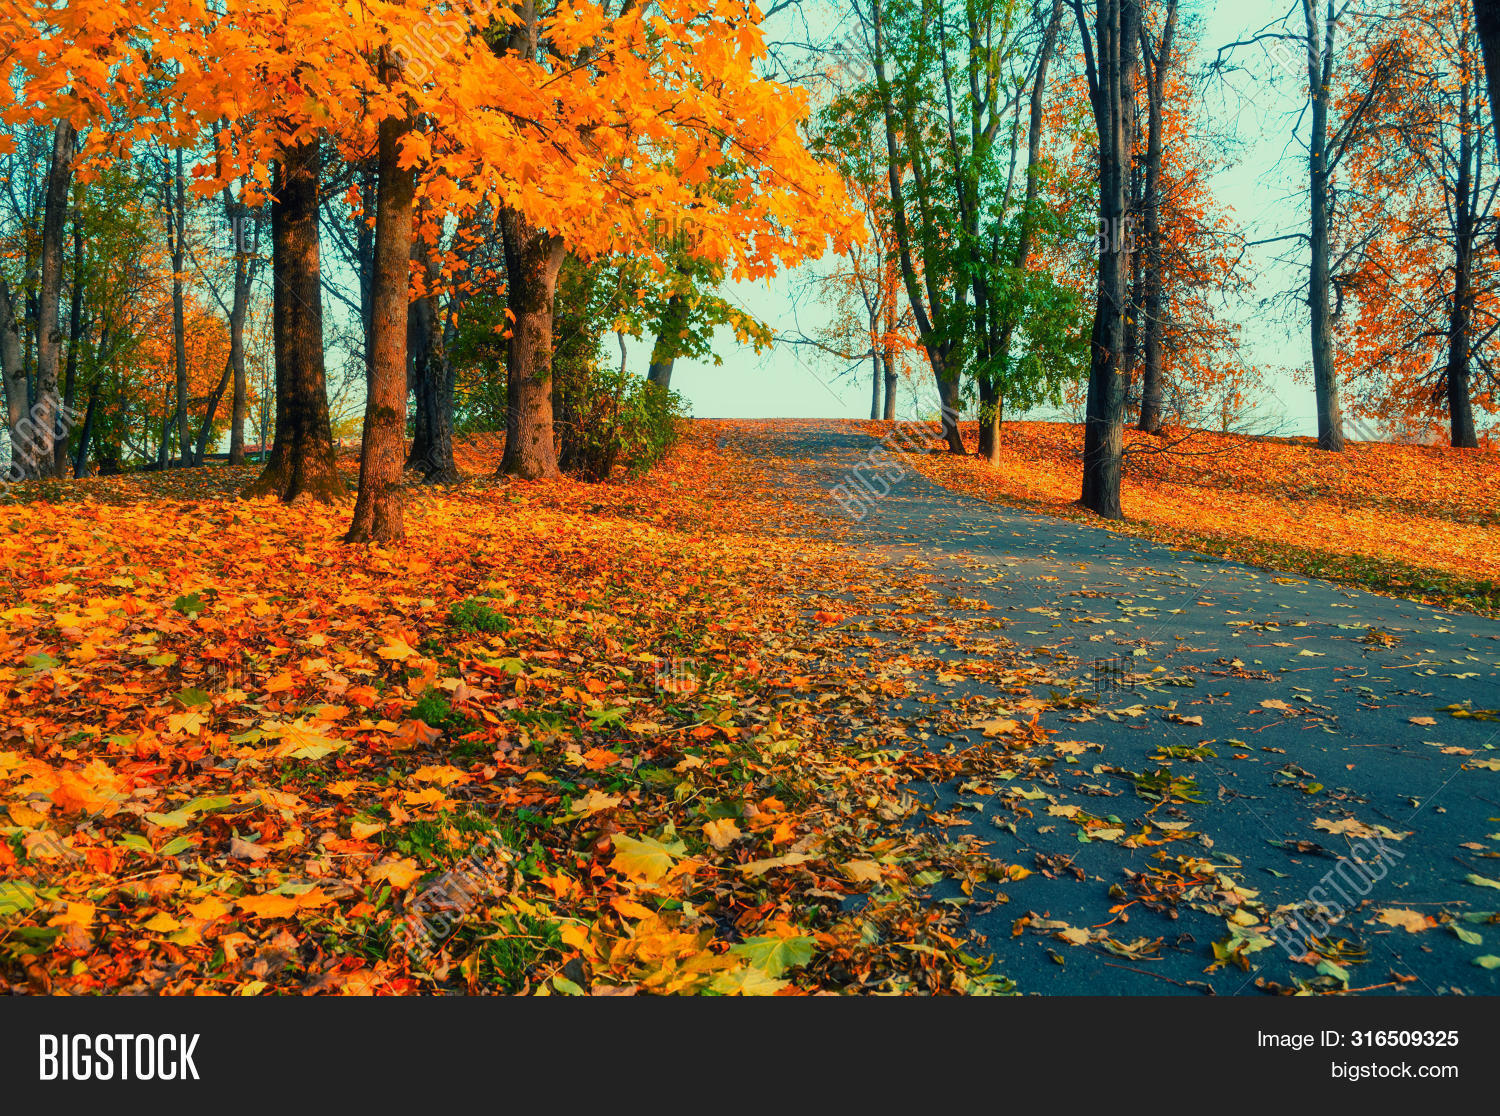 November,October,September,alley,autumn,background,beautiful,bright,city,cloudy,day,dry,fall,fallen,falling,foliage,footpath,foreground,forest,gold,grove,leaves,lonely,nature,panorama,park,path,quiet,red,road,scene,season,fall-forest,fall-landscape,fall-nature,fall-scene,fall-trees,fall-background,fall-leaves,fall-park,fall-outdoors,fall-leaf,fall-alley,fall-sunset,tree,view,wallpaper,weather,yellow,yellowed